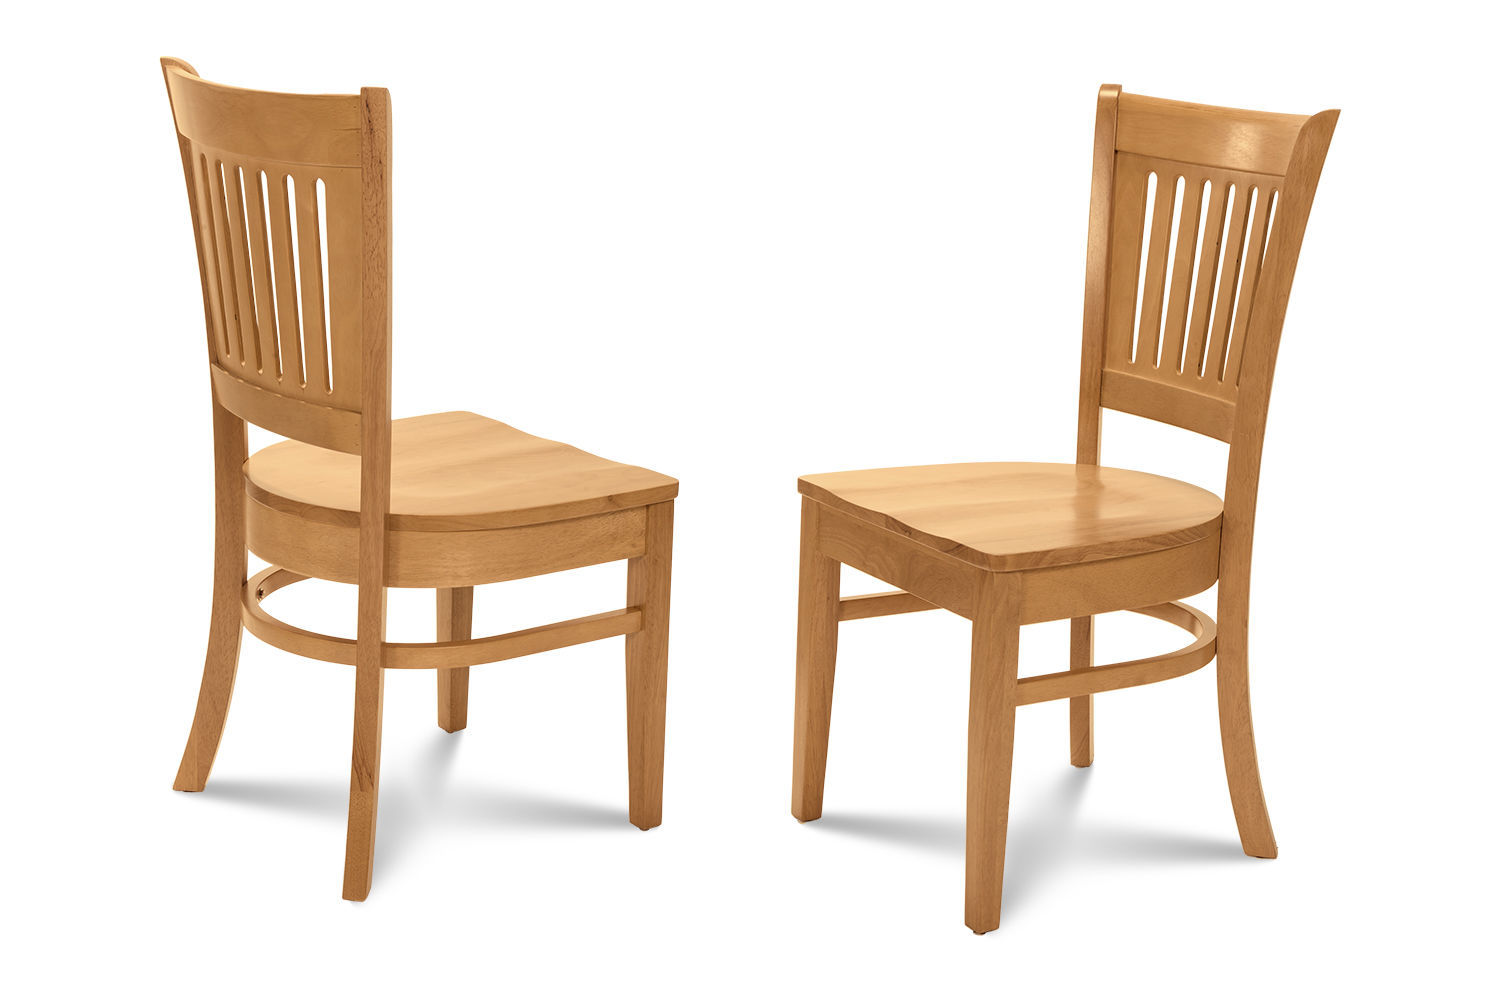 2 DINING KITCHEN DINETTE CHAIRS w/ WOOD SEATS IN OAK FINISH